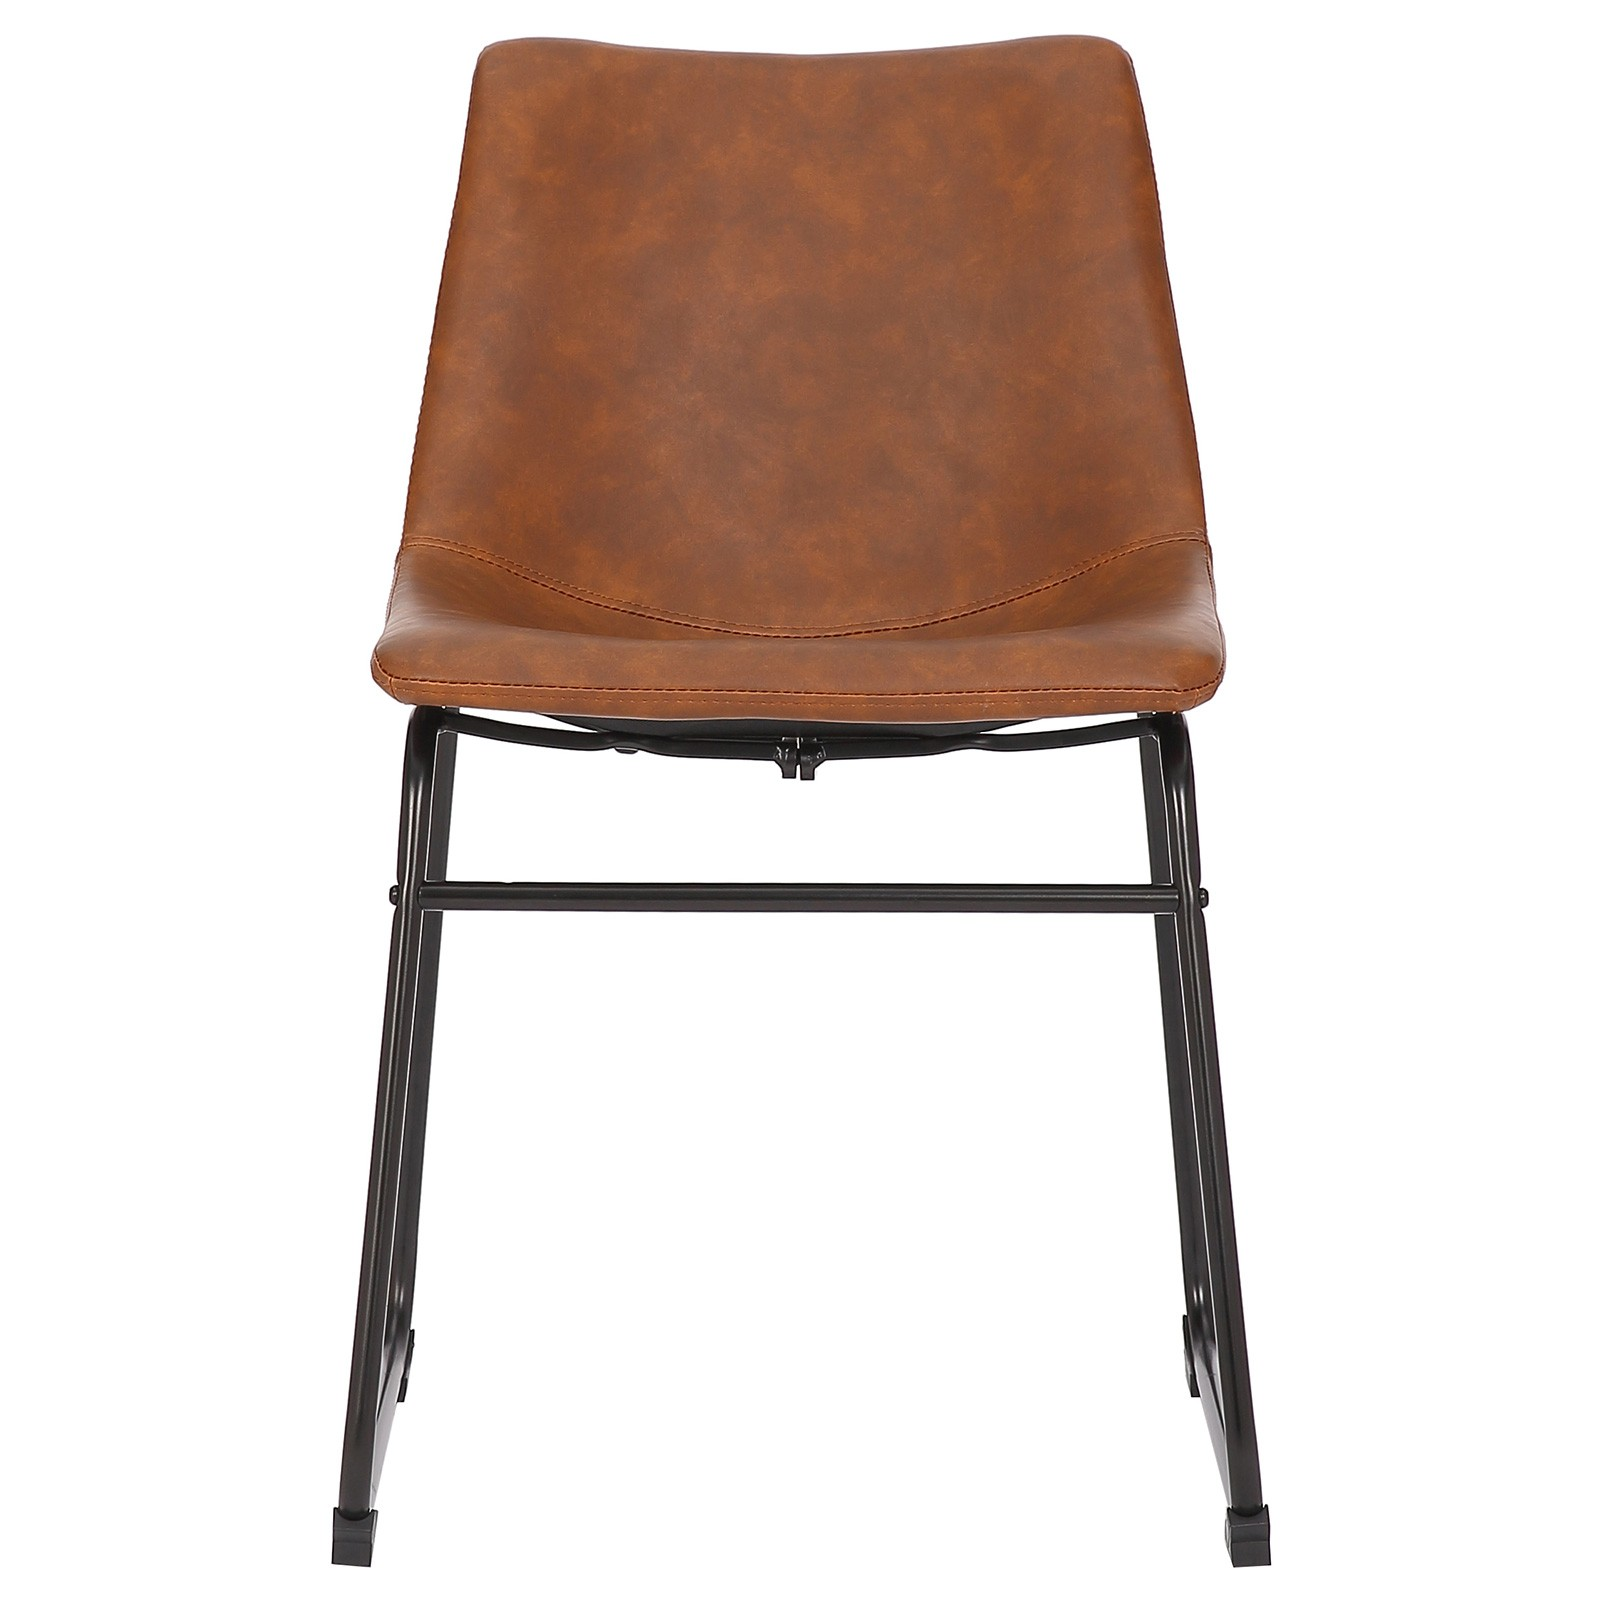 Prato Commercial Grade Faux Leather Dining Chair, Tan